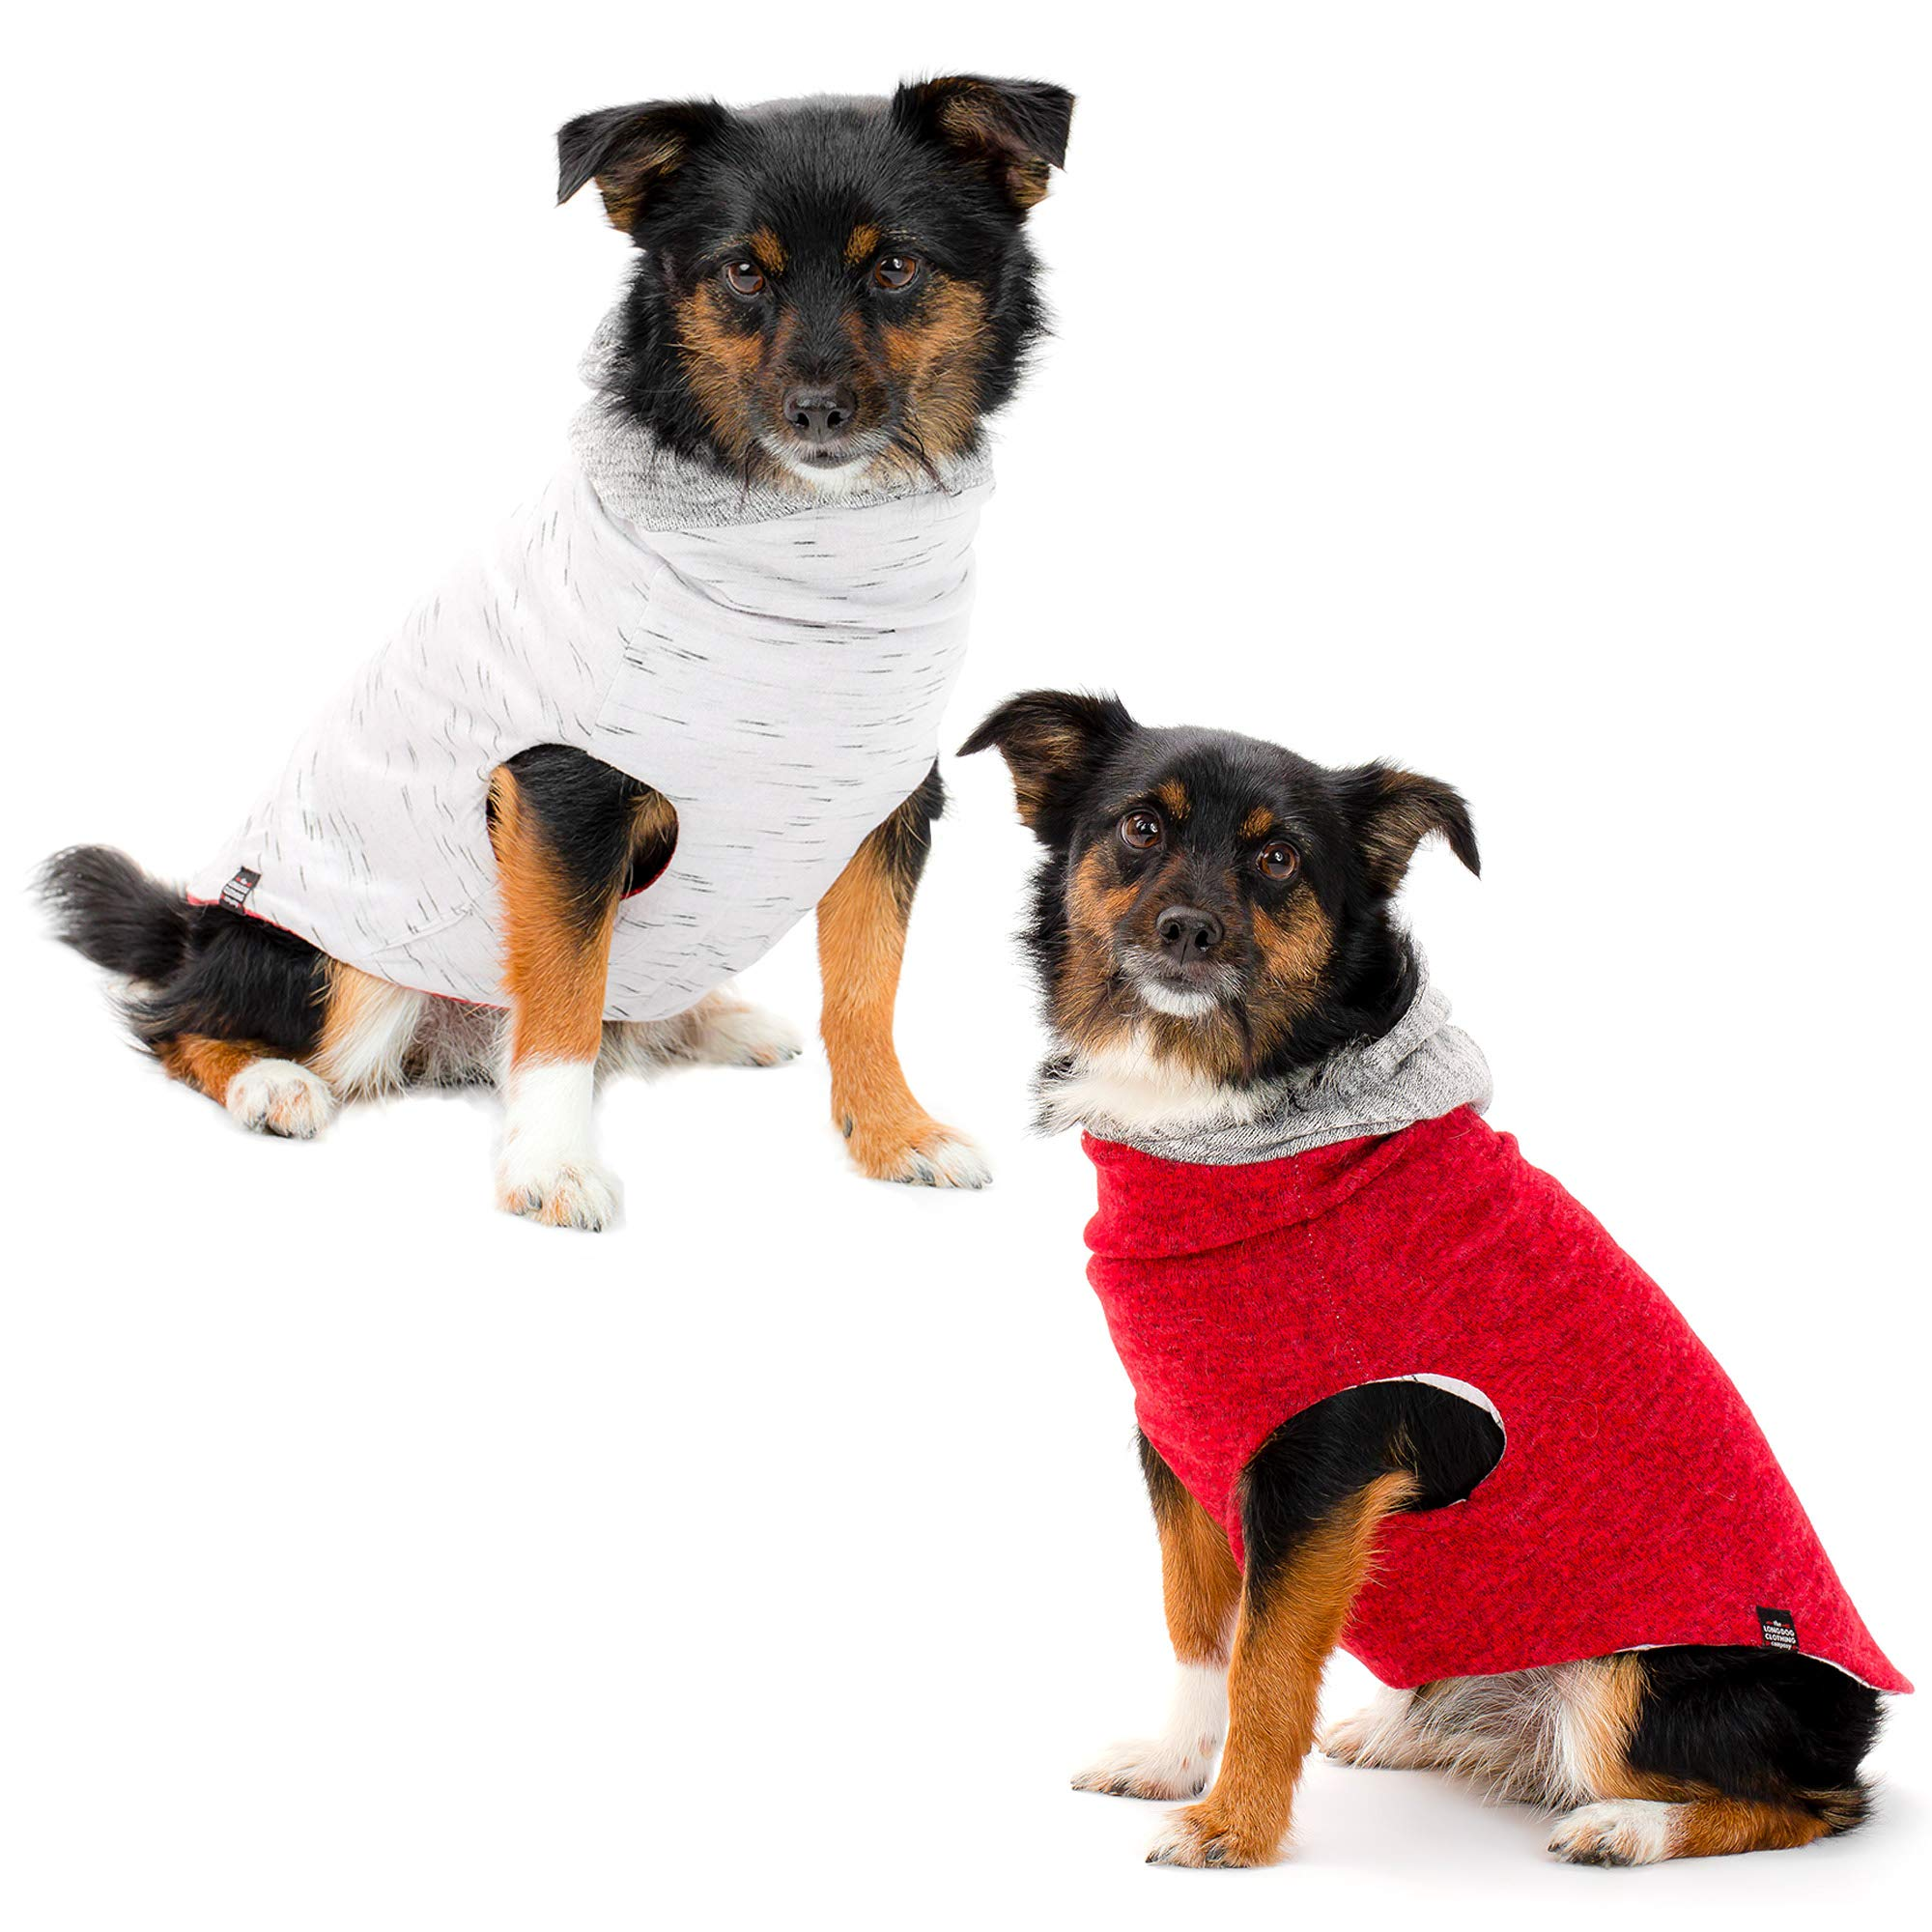 The Long Dog Clothing Co. Dog Clothes | Expertly Designed Reversible Dog Shirt with Dog Hoodie | Trendy Dog Clothes for Small, Medium, Large Dogs. Made With Premium Materials for a Stylish Dog Outfit.